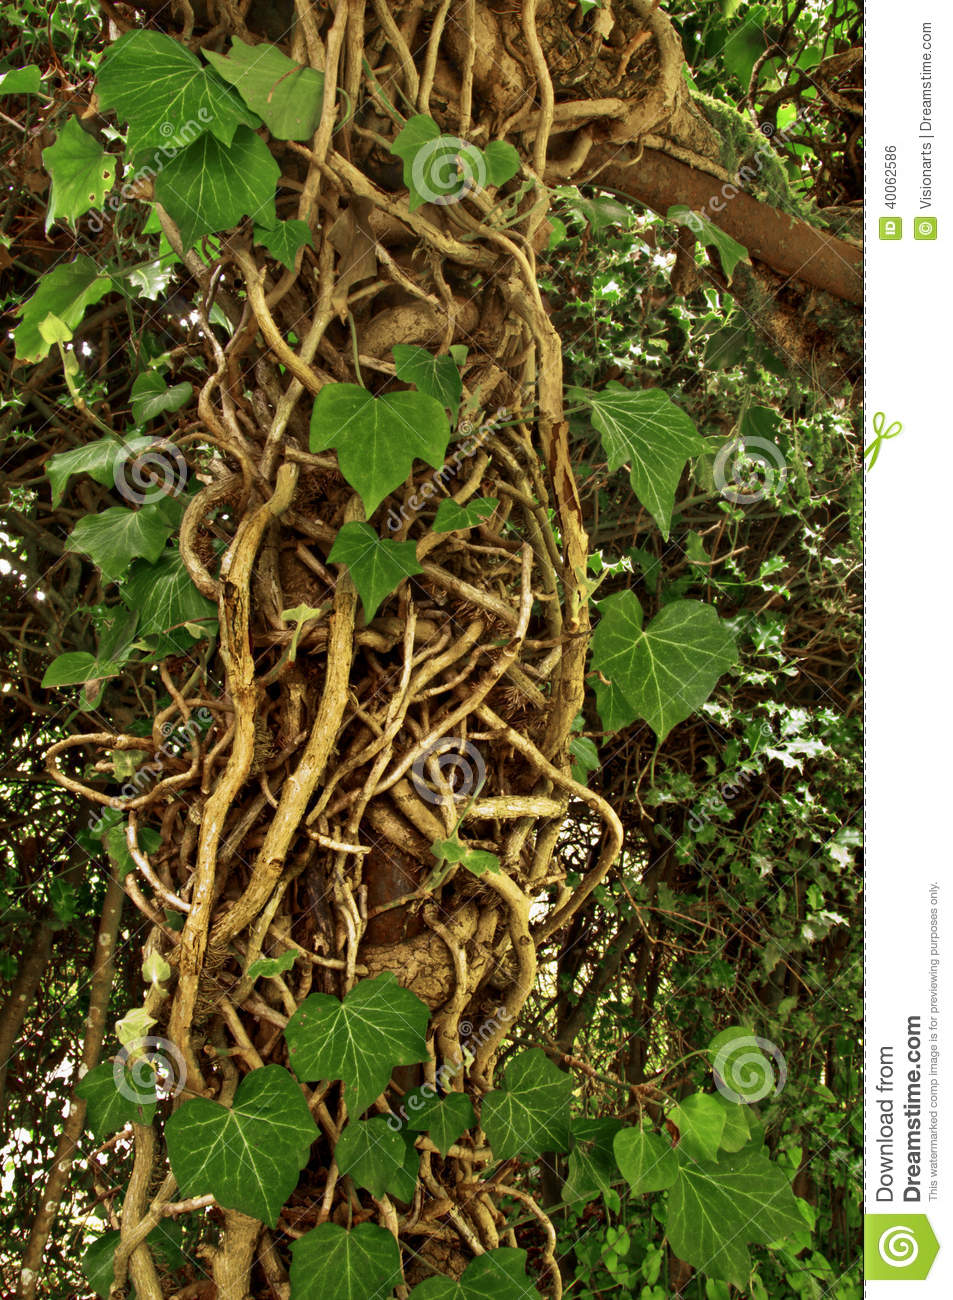 Large cluster of vined ivy roots crawling up trellis